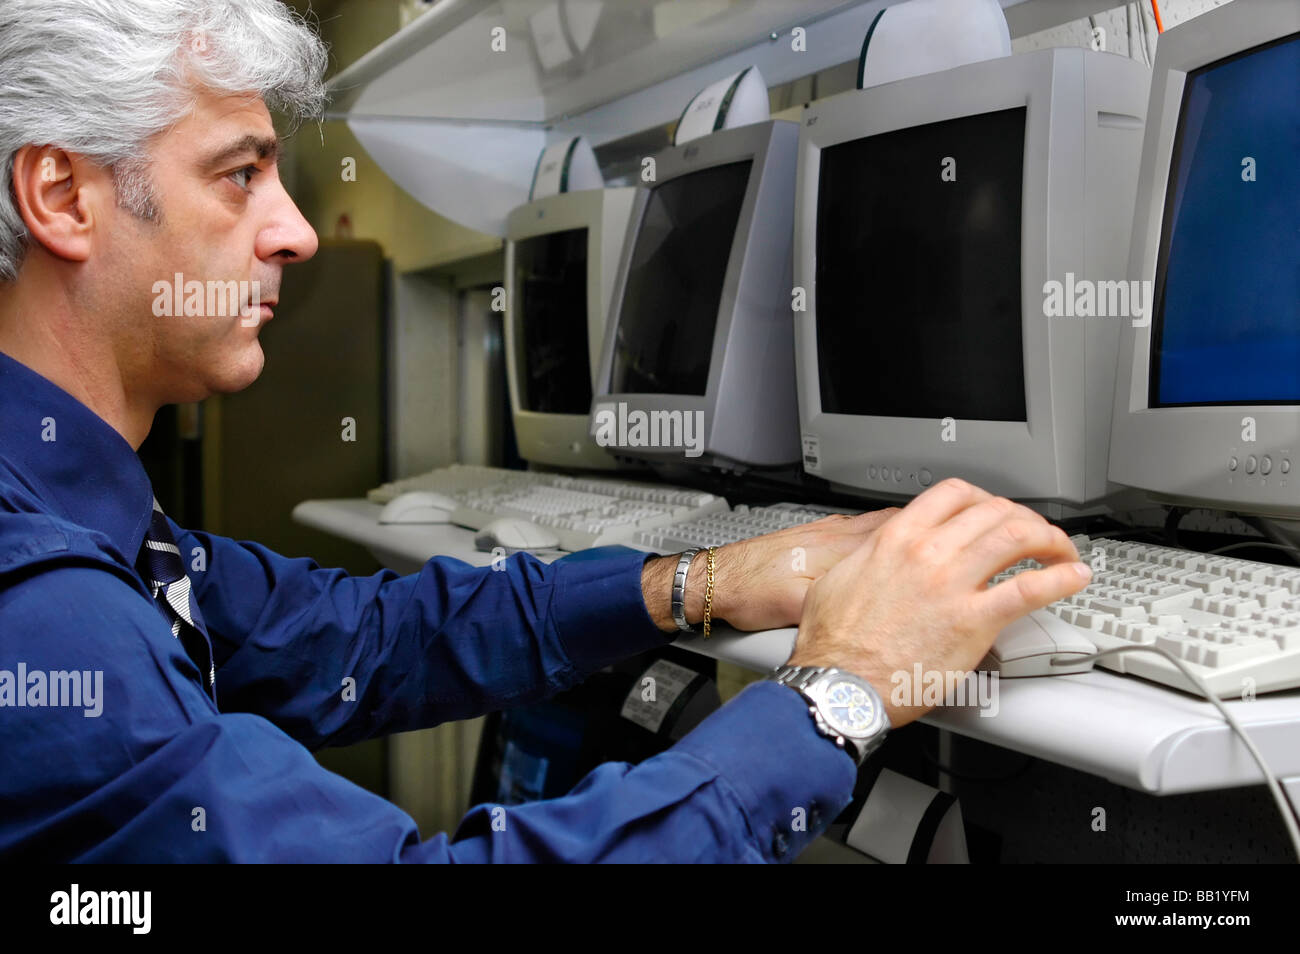 Technician looking at a computer screen and entering data - Stock Image